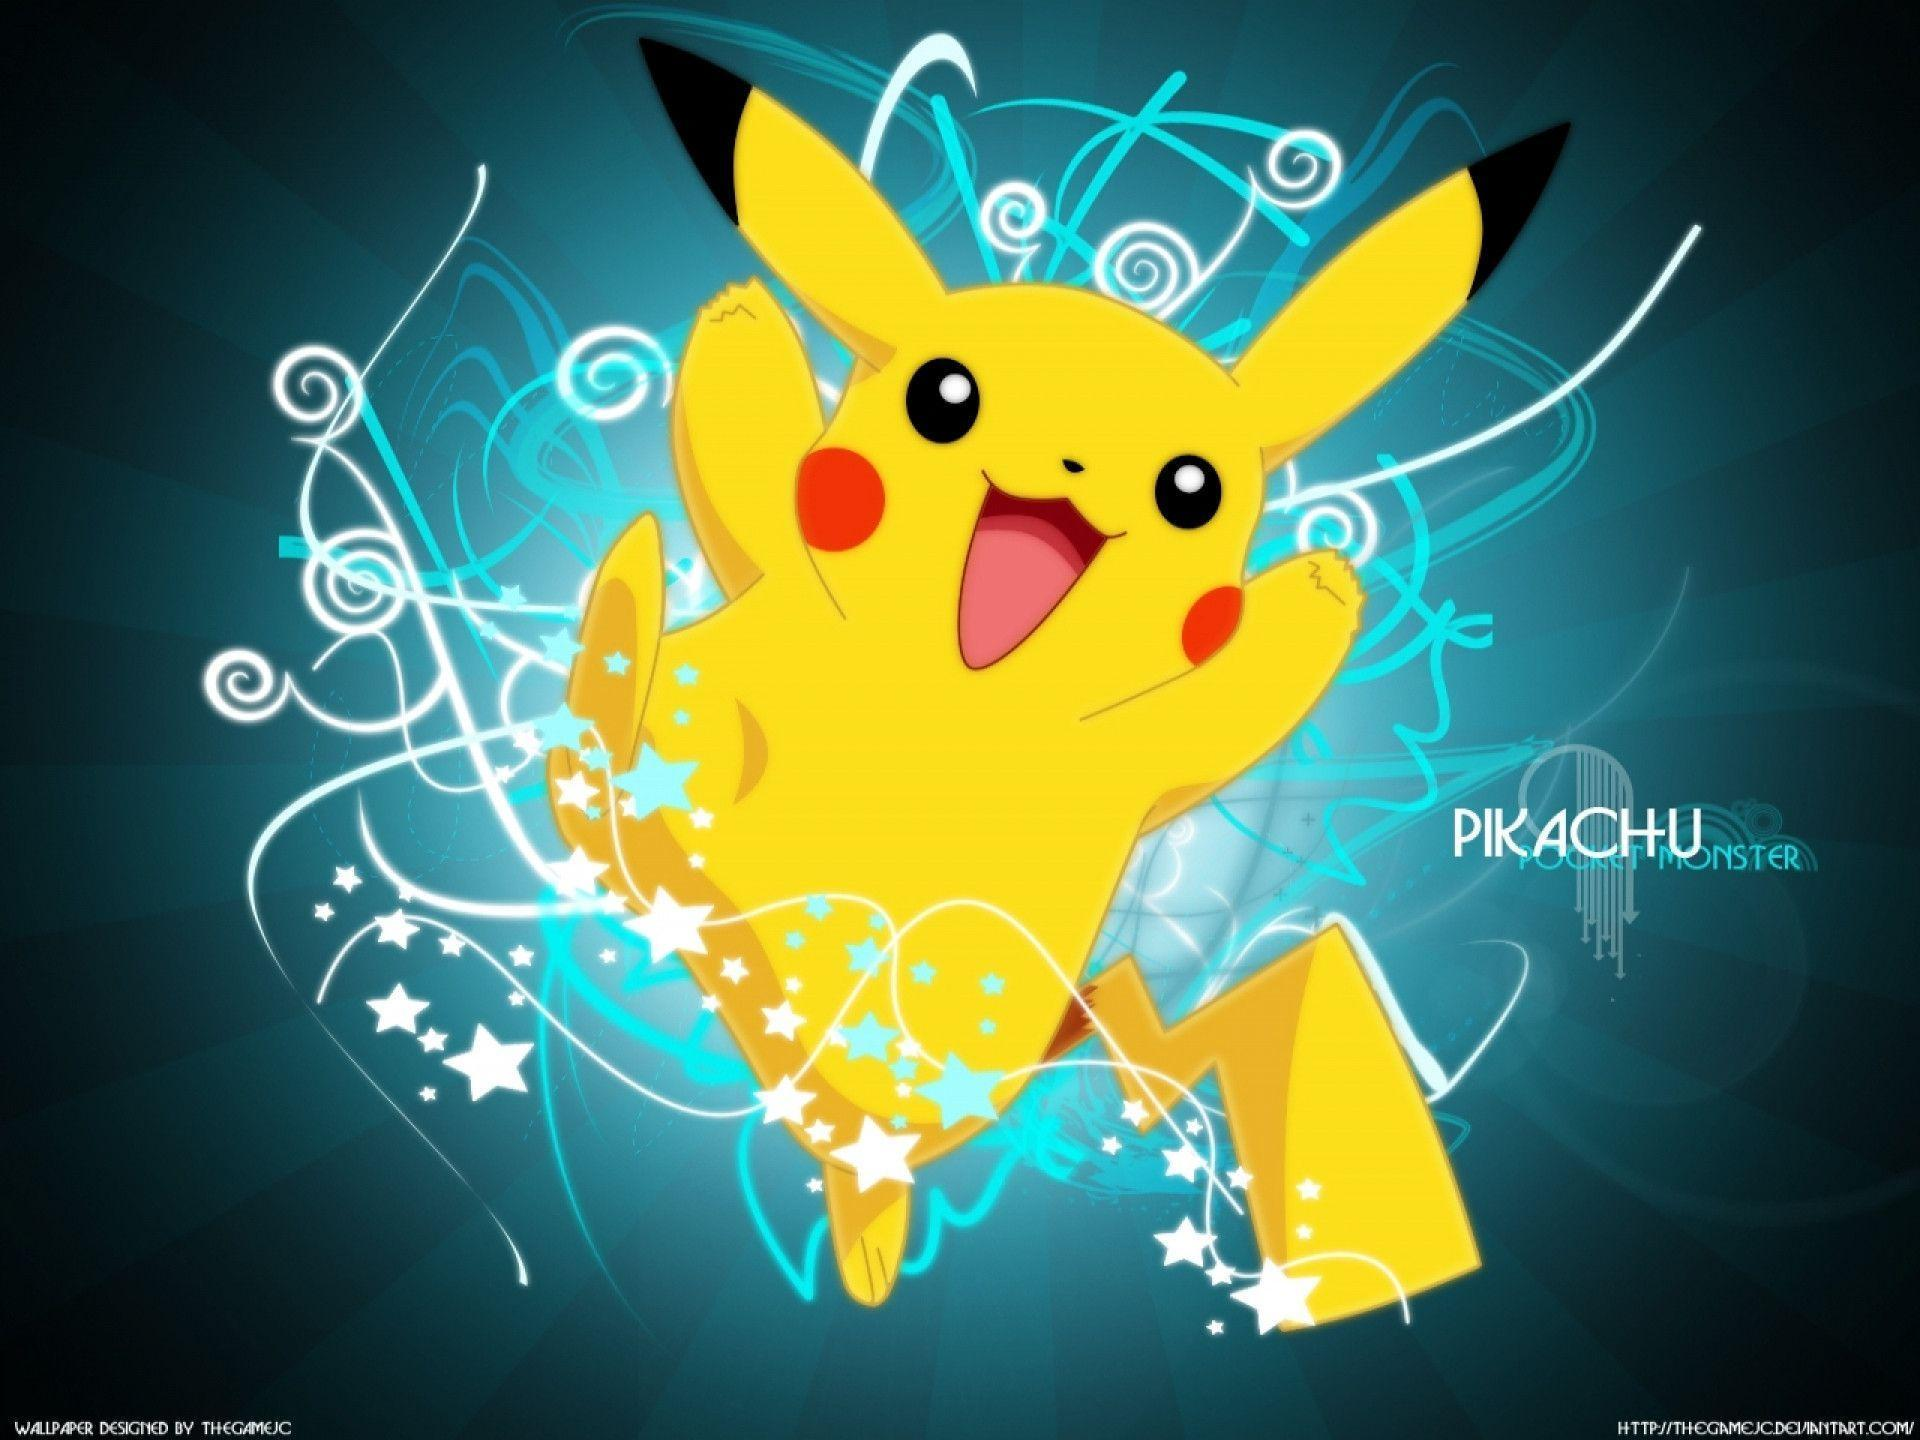 Pikachu 3D Wallpapers - Top Free